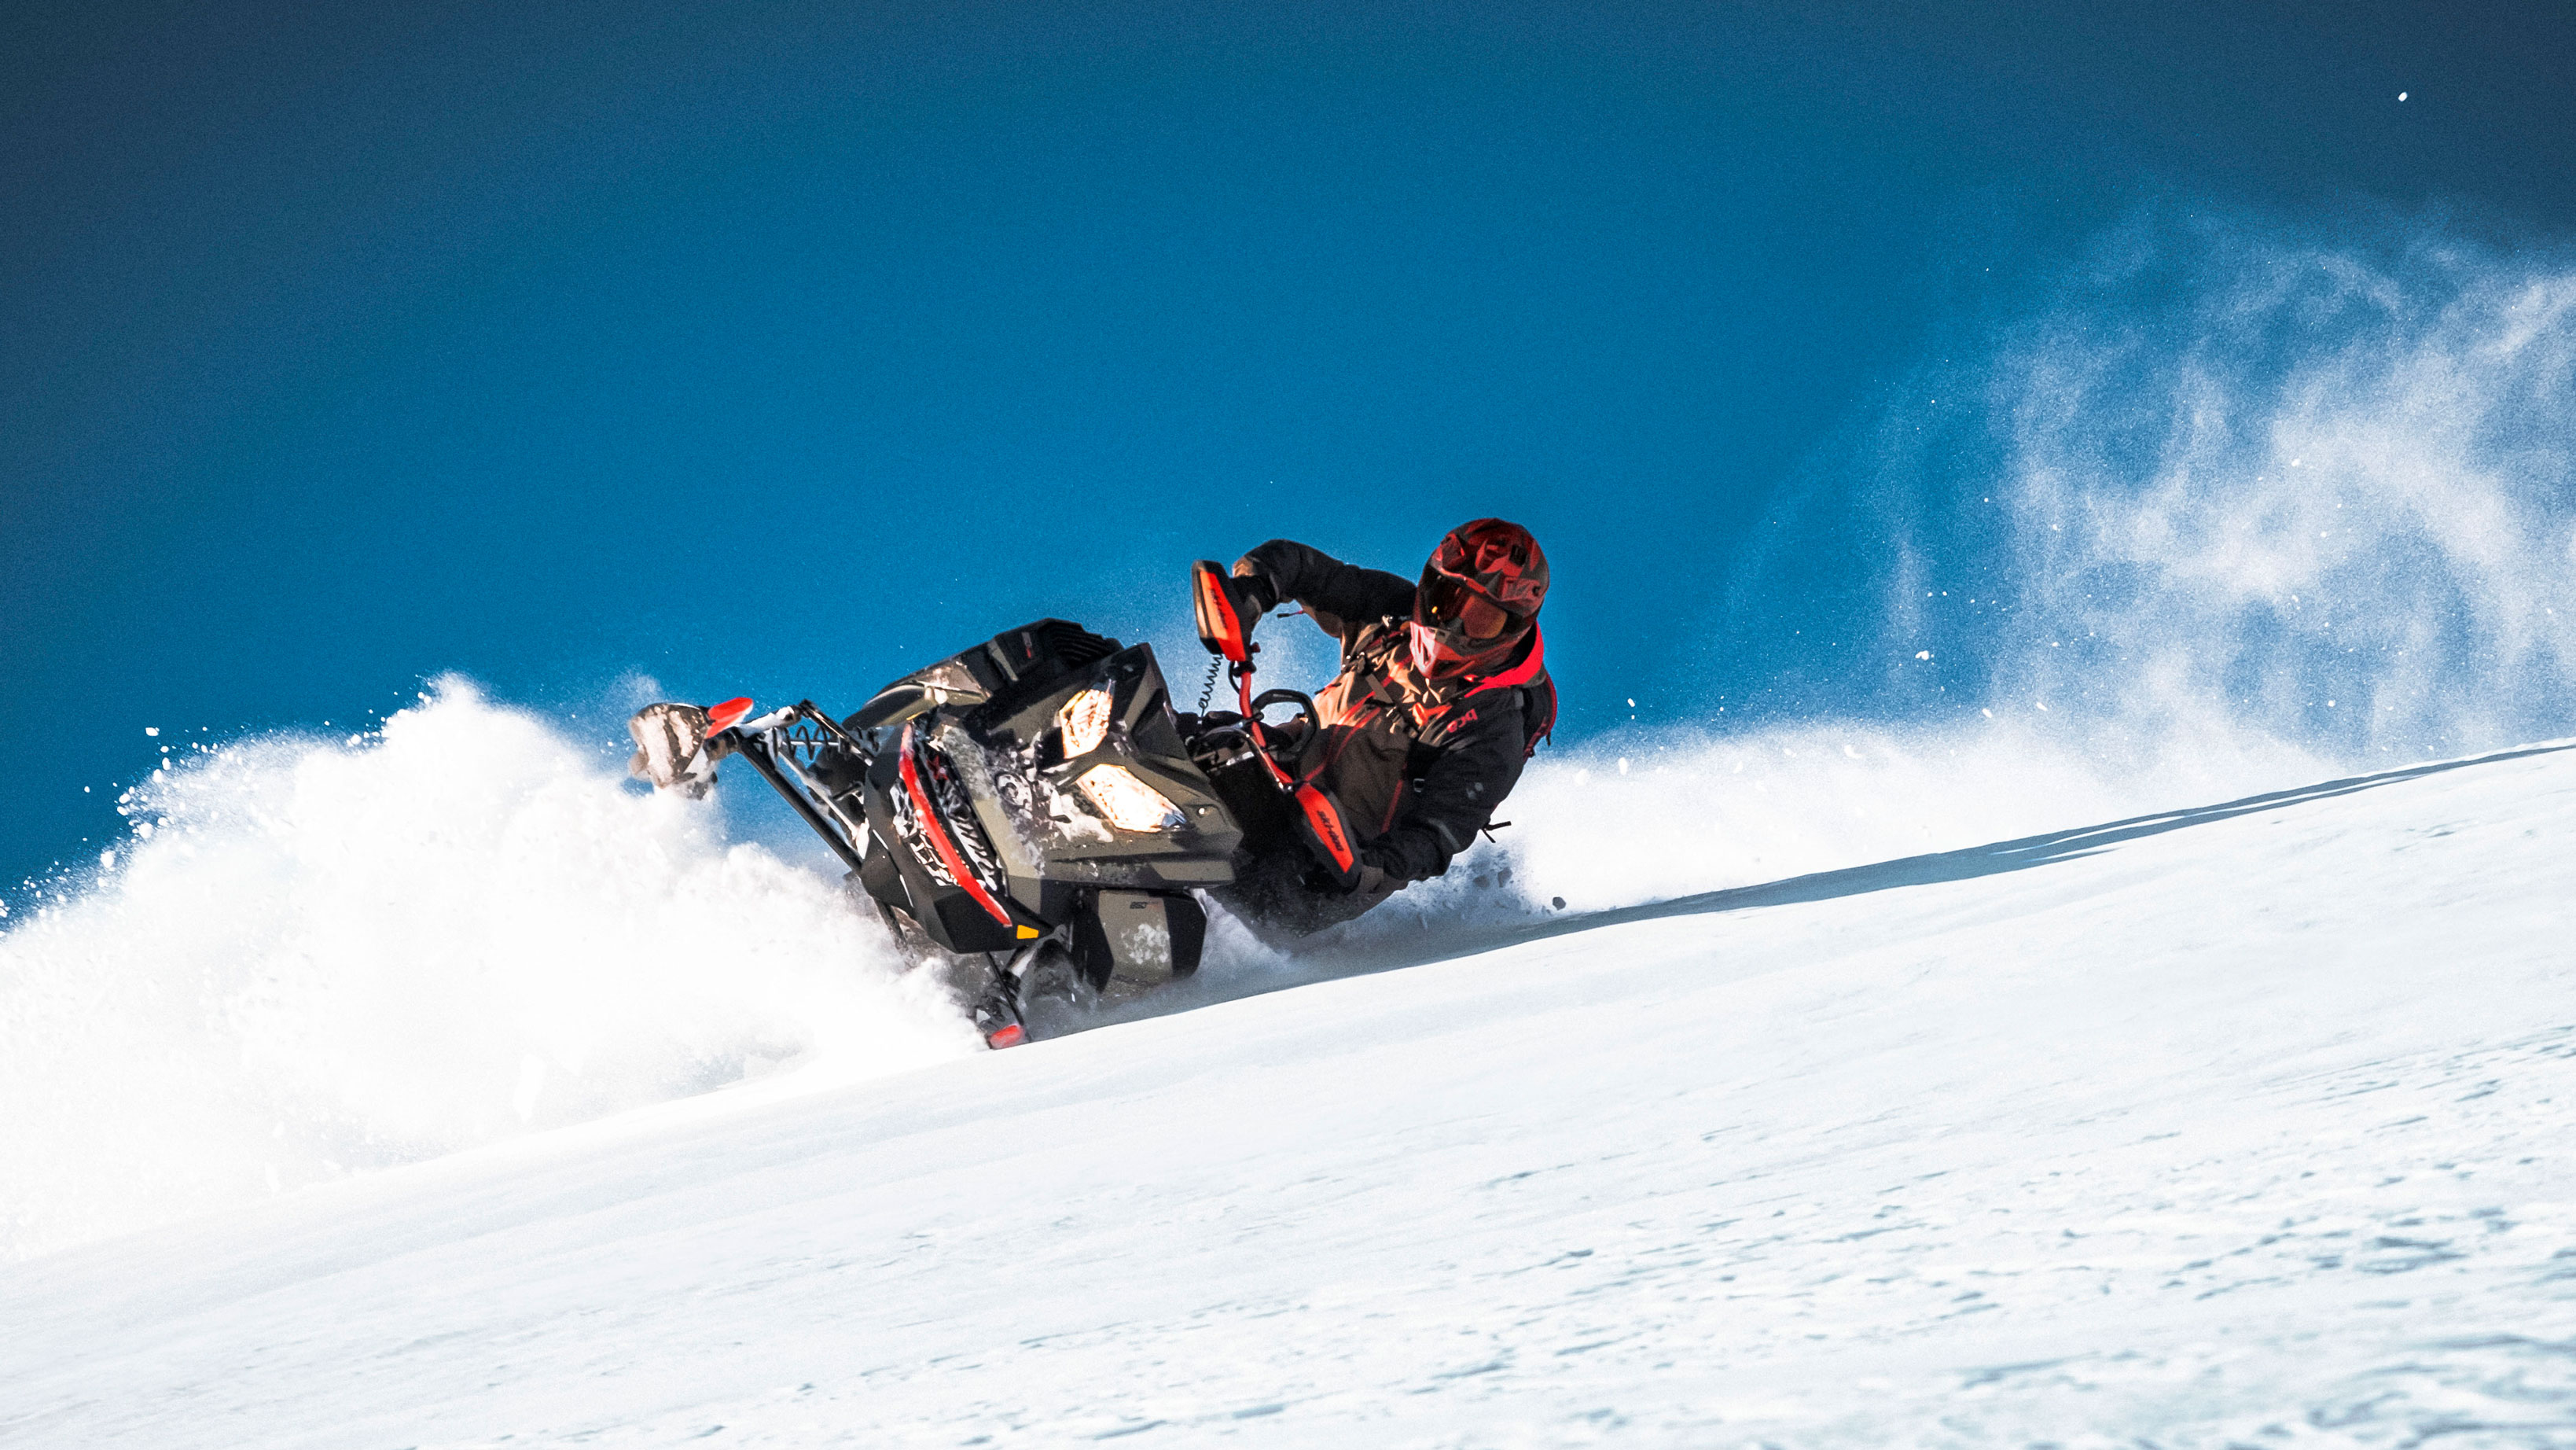 Ski-Doo Summit carving in Deep-Powder